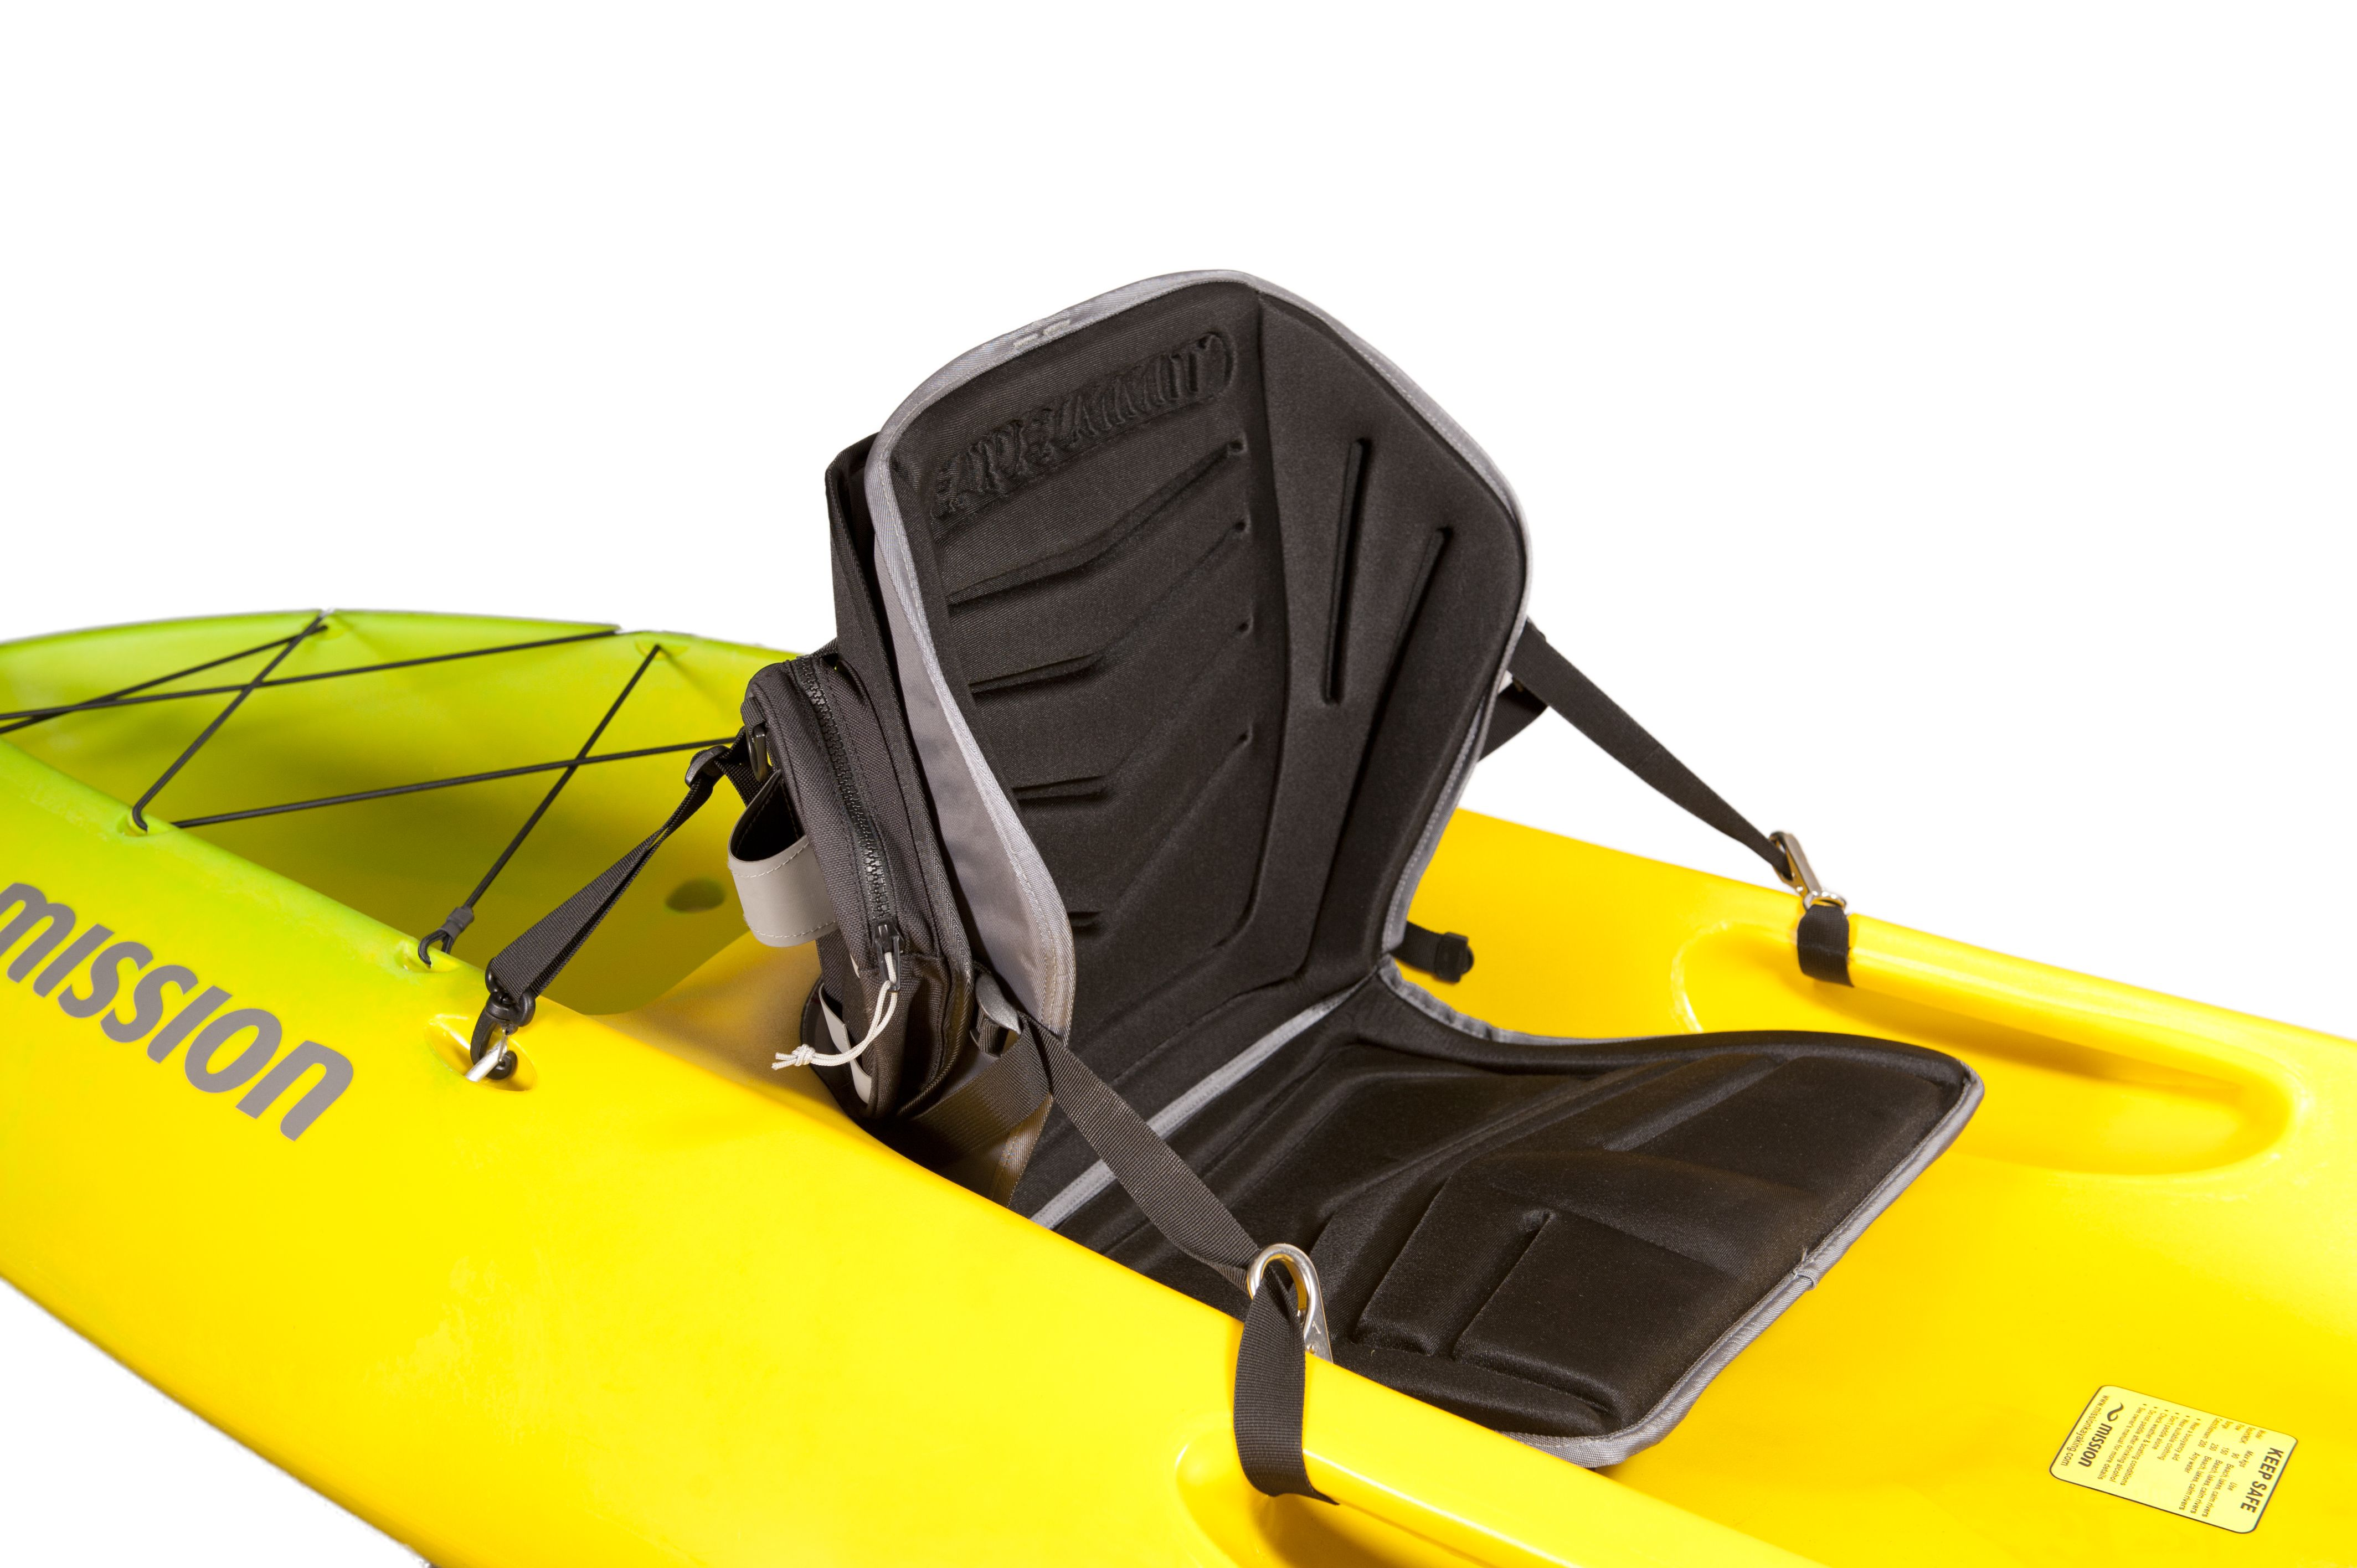 Kayak Seat L Camp Chair L Paddle Gear L Stay Comfortable L